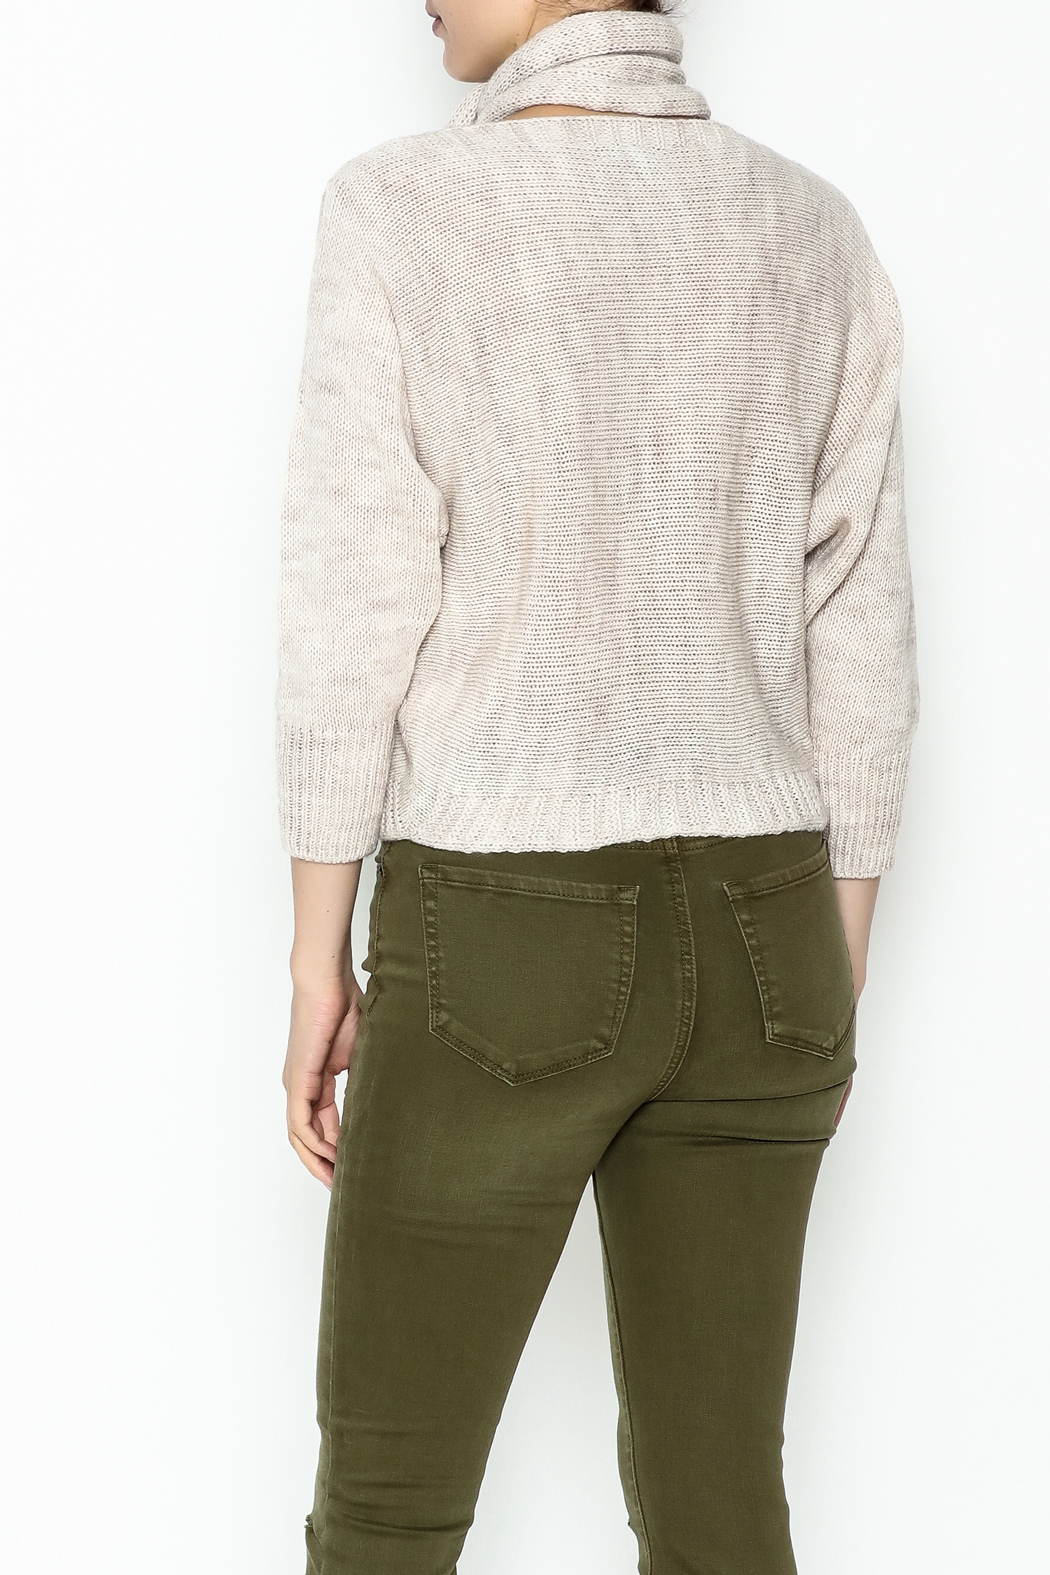 M made in Italy Cut Out Sweater - Back Cropped Image